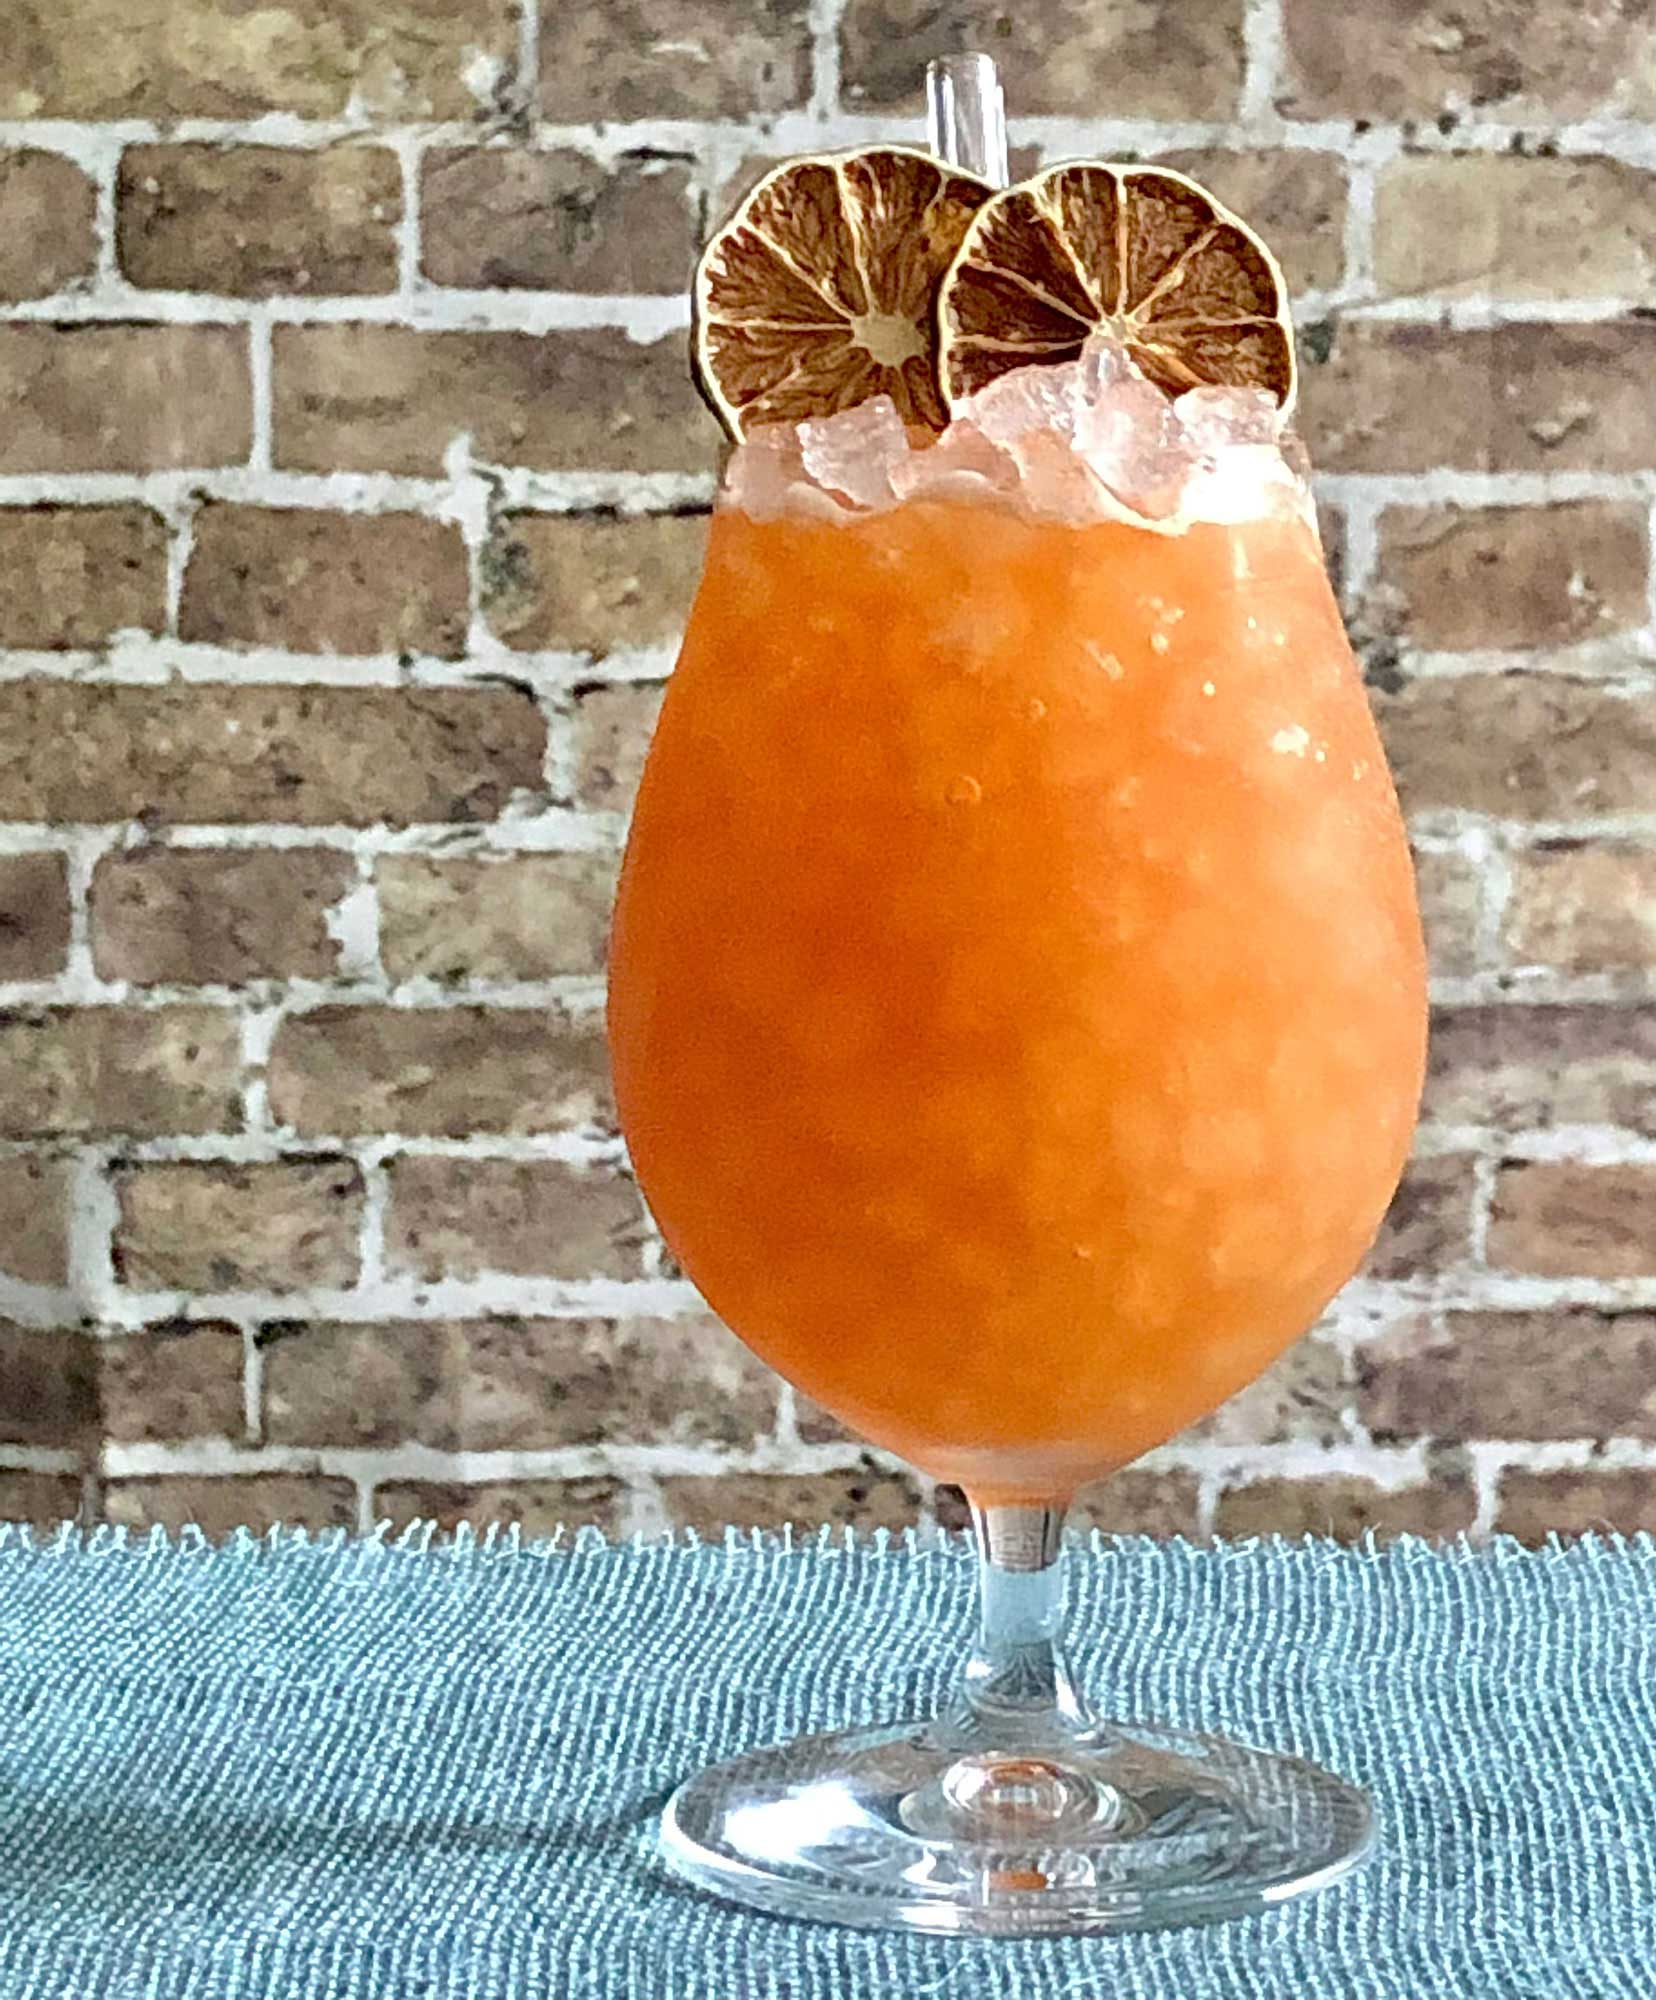 An example of the Anna Skytte's Raid, the mixed drink (cocktail), by Luiggi Uzcategui, Big Orange, Little Rock, AR, featuring Kronan Swedish Punsch, rye whiskey, lime juice, Smith & Cross Traditional Jamaica Rum, Carlsbad Becherovka Bitter, Angostura bitters, and St. Elizabeth Allspice Dram; photo by Lee Edwards